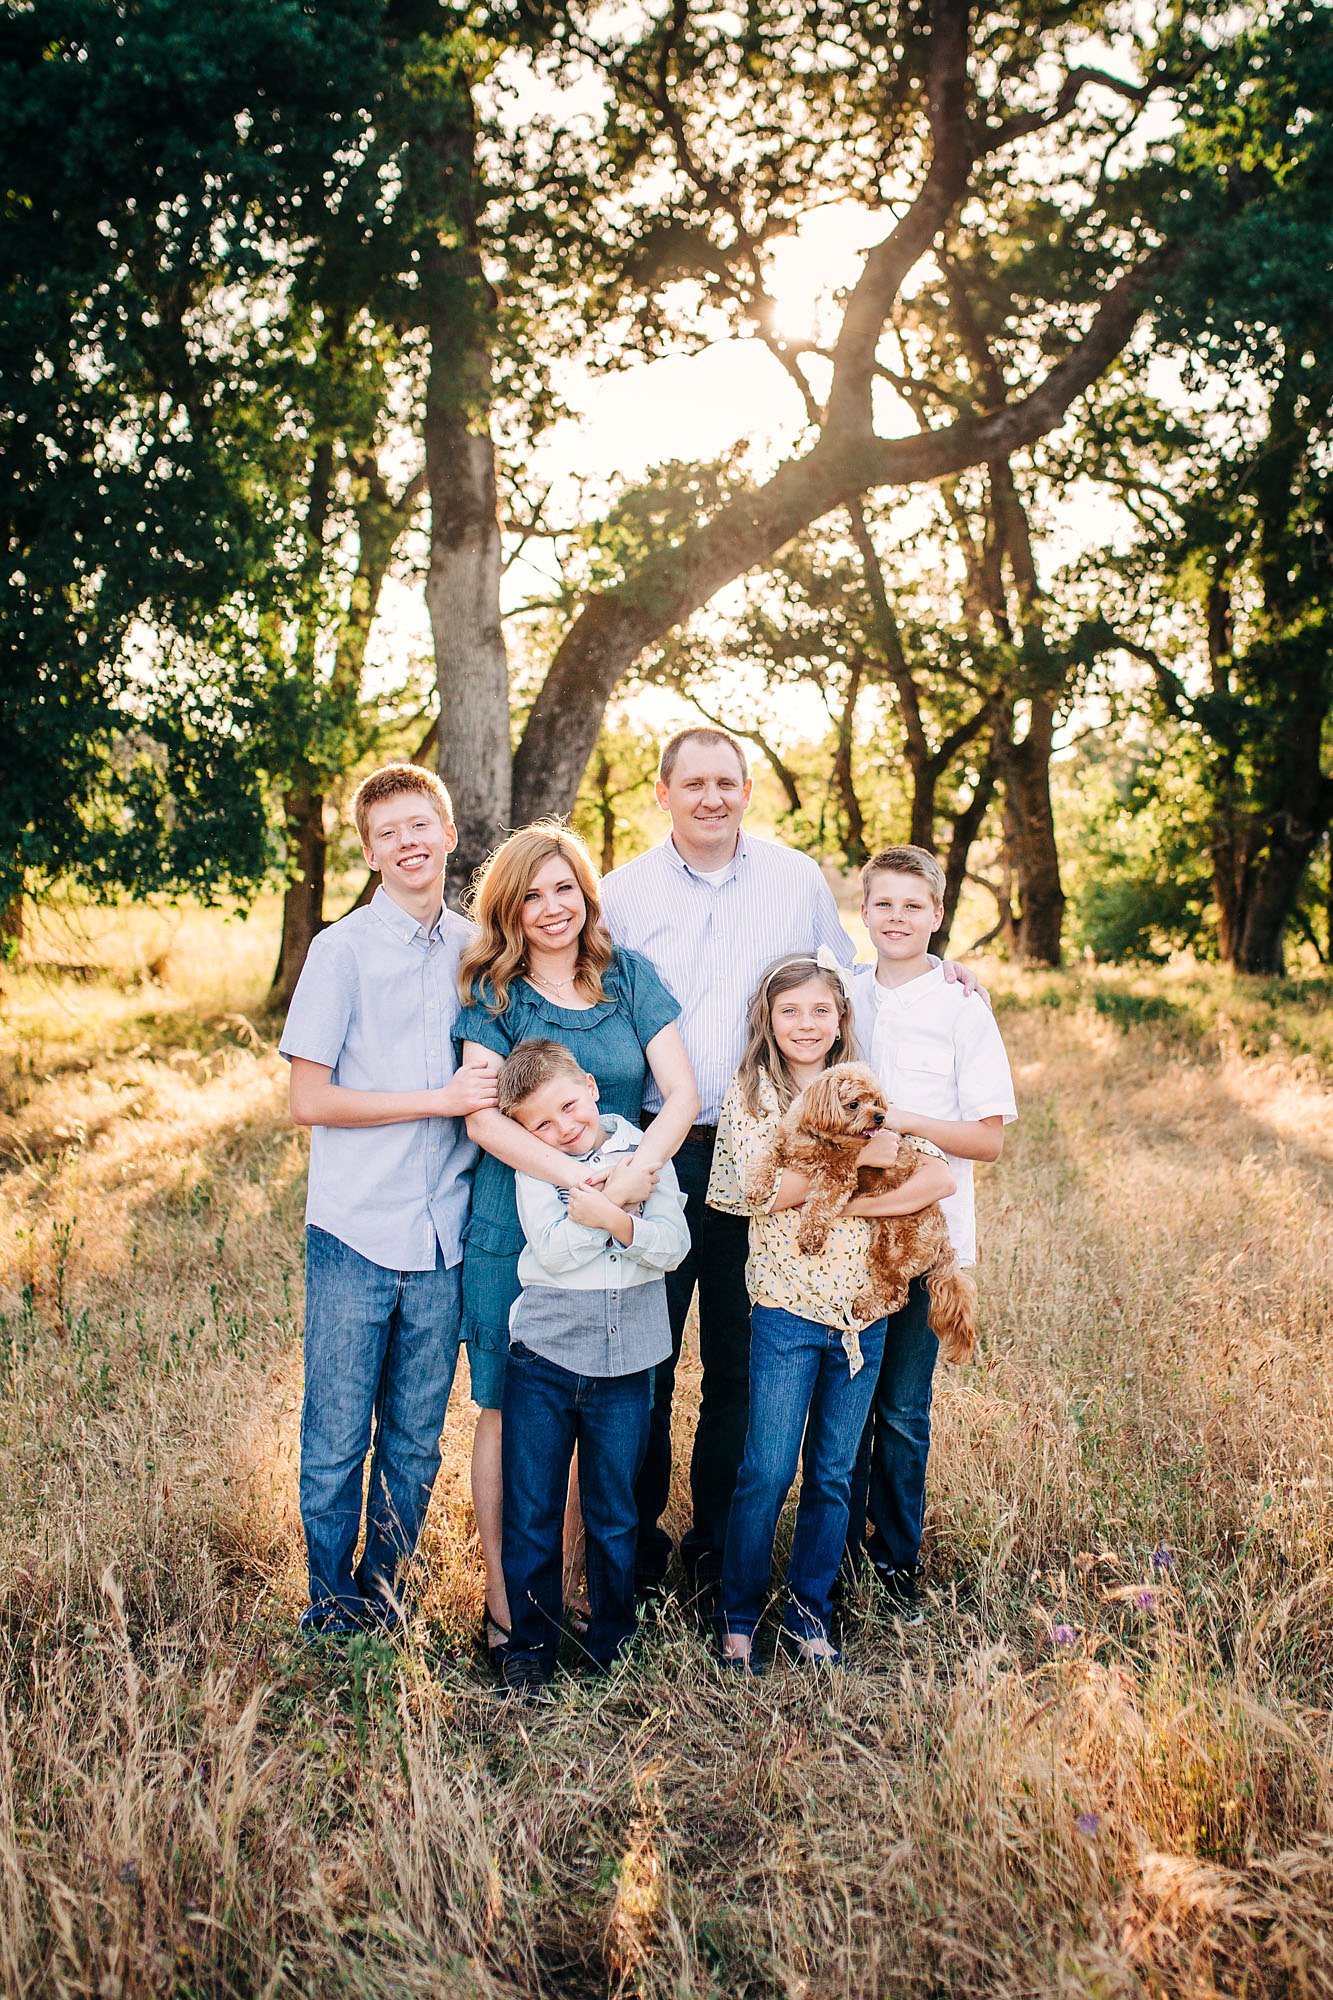 A family and their dog gather together for a lifestyle photo session with family photographer Amy Wright in Roseville, California.